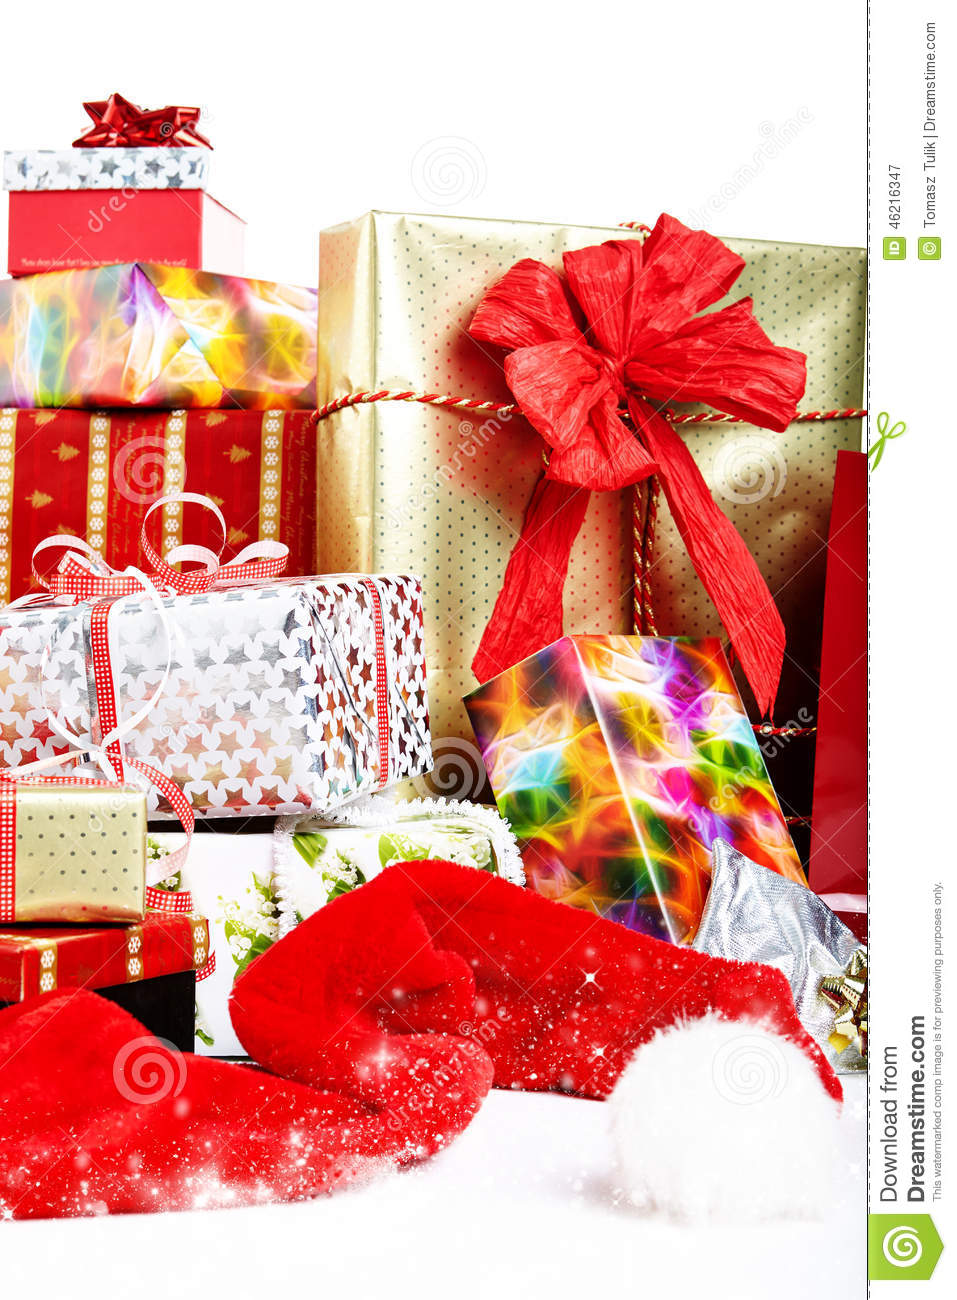 A Pile Of Christmas Gifts In Colorful Wrapping